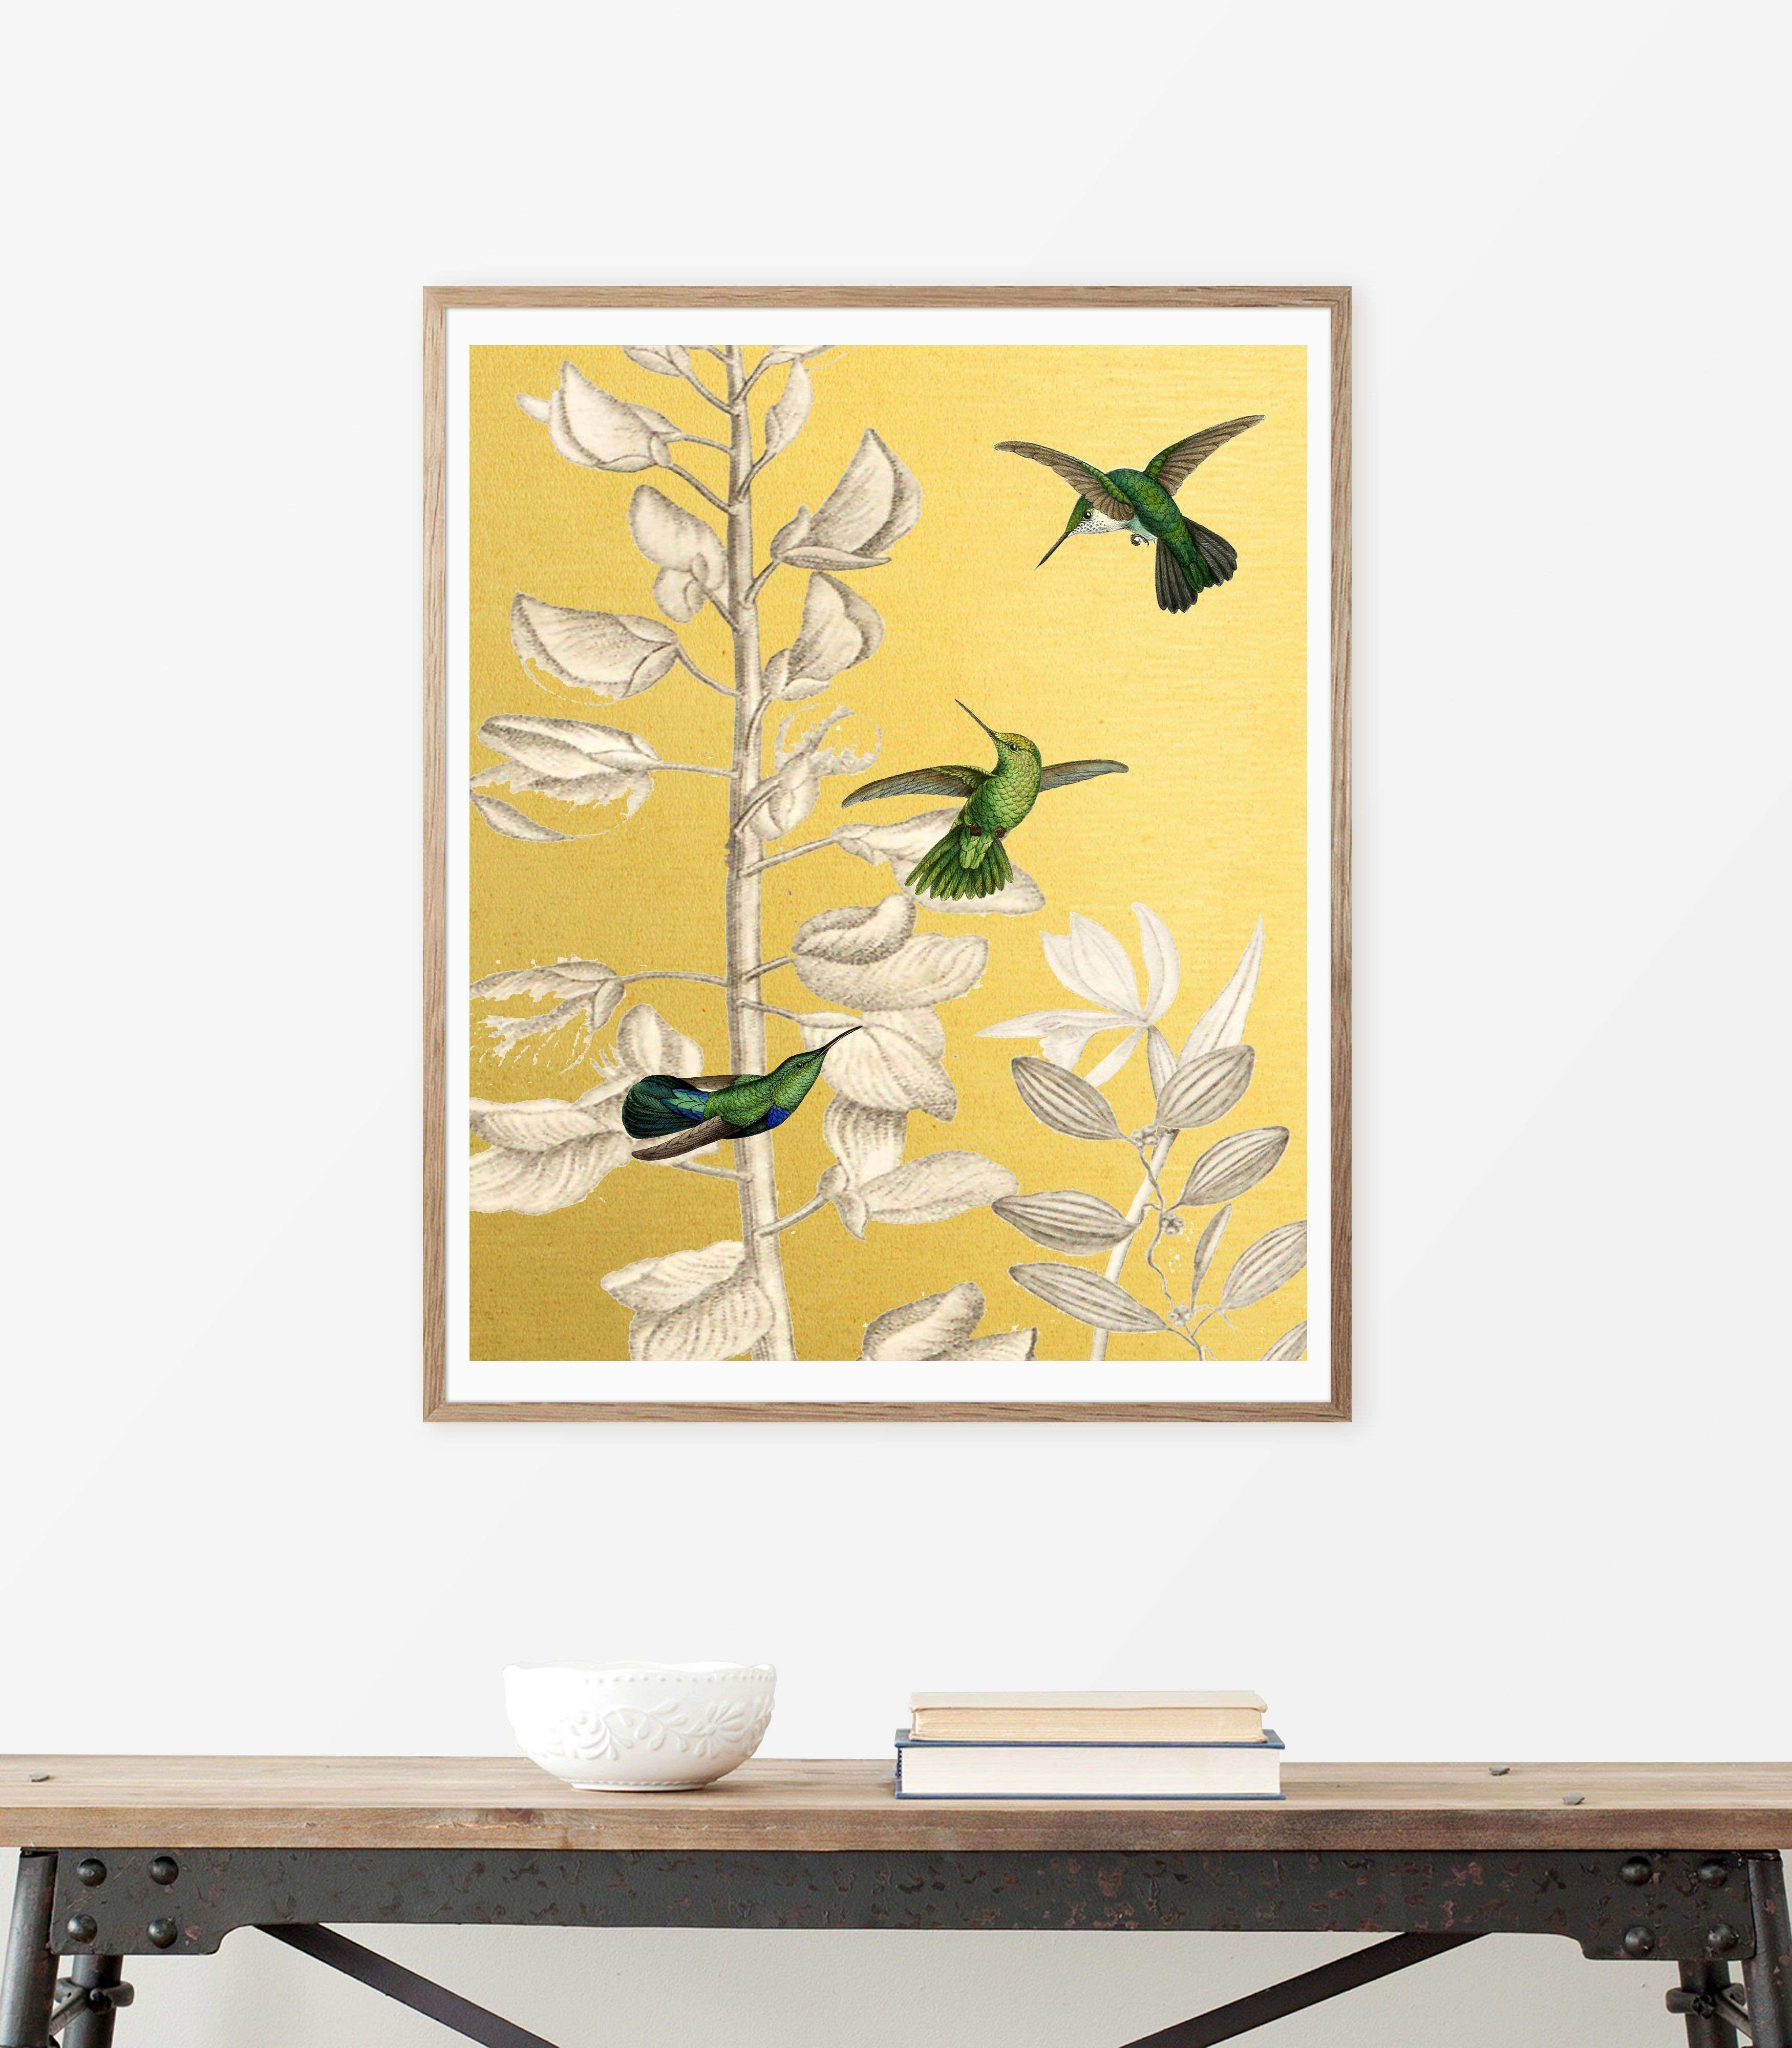 Wall Prints for Bedroom Inspirational Printable Art Humming Birds ...